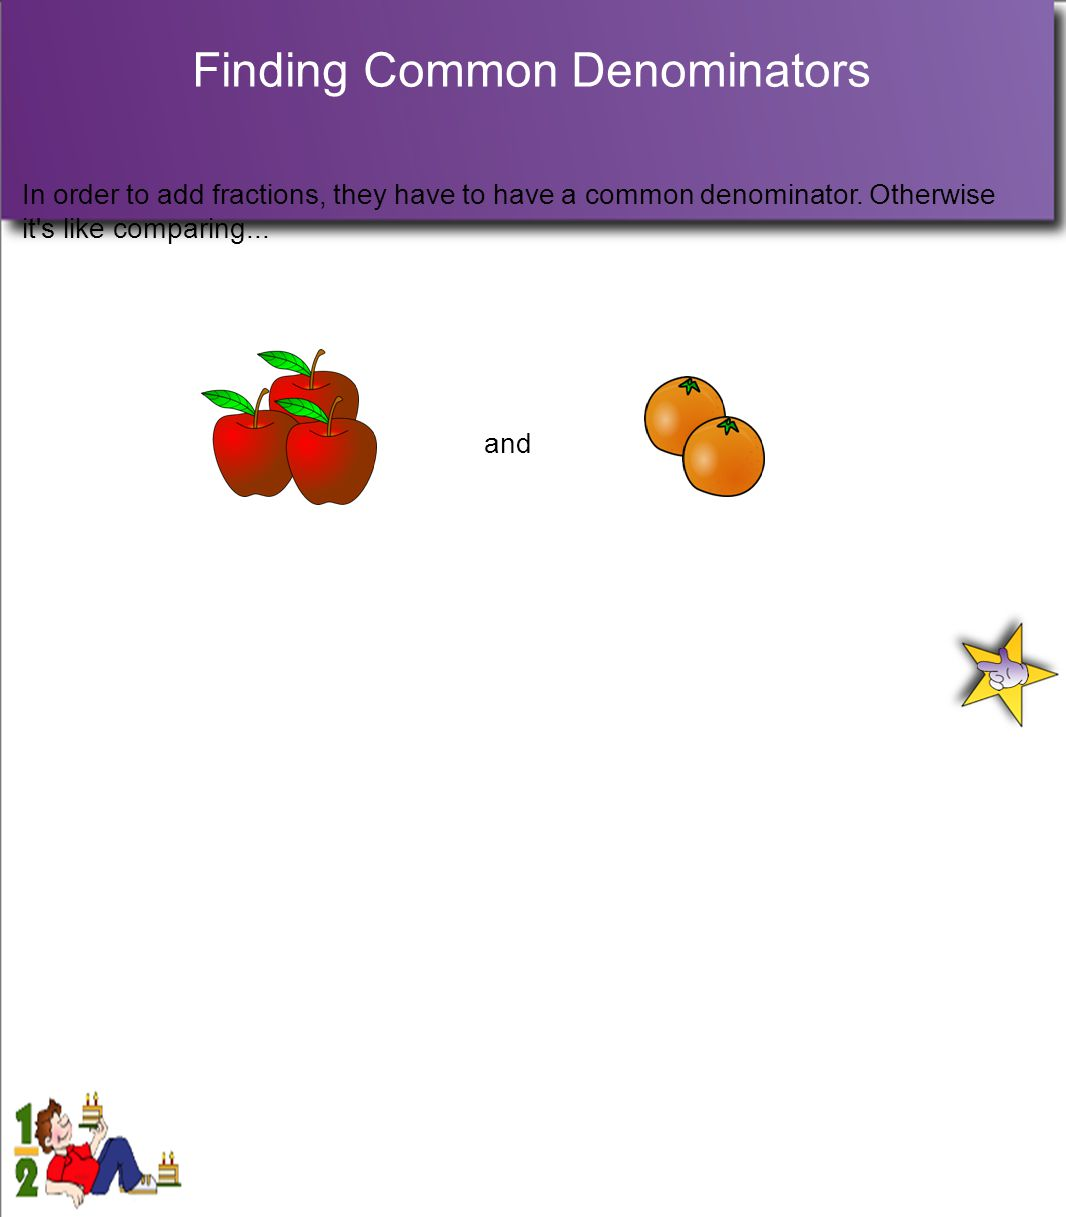 Finding Common Denominators